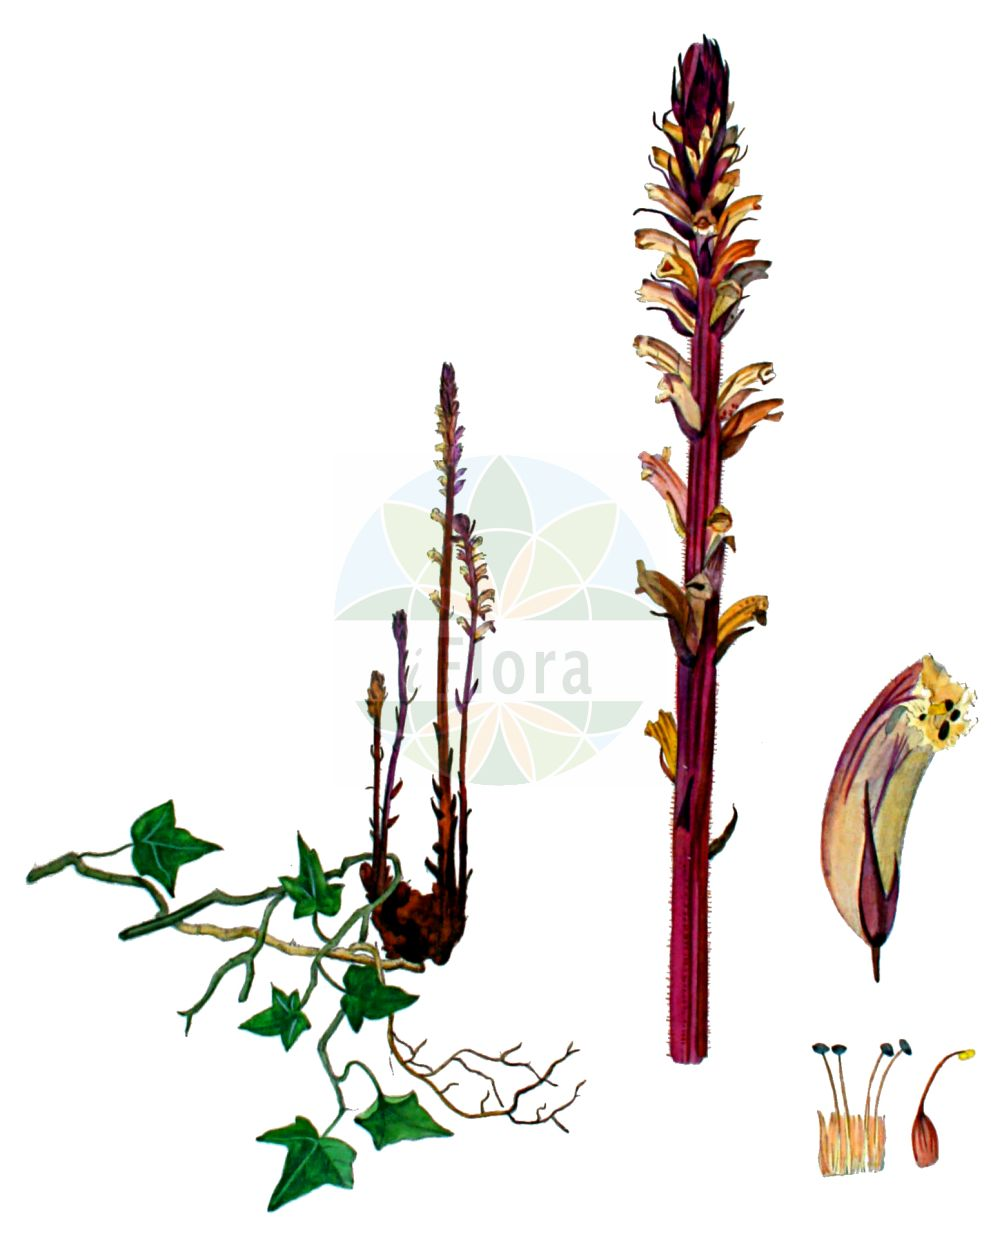 Historische Abbildung von Orobanche hederae (Efeu-Sommerwurz - Ivy Broomrape). Das Bild zeigt Blatt, Bluete, Frucht und Same. ---- Historical Drawing of Orobanche hederae (Efeu-Sommerwurz - Ivy Broomrape).The image is showing leaf, flower, fruit and seed.(Orobanche hederae,Efeu-Sommerwurz,Ivy Broomrape,Orobanche balearica,Orobanche glaberrima,Orobanche hederae,Orobanche laurina,Orobanche yuccae,Efeu-Sommerwurz,Ivy Broomrape,Orobanche,Sommerwurz,Broomrape,Orobanchaceae,Sommerwurzgewaechse,Broomrape family,Blatt,Bluete,Frucht,Same,leaf,flower,fruit,seed,Kops (1800-1934))